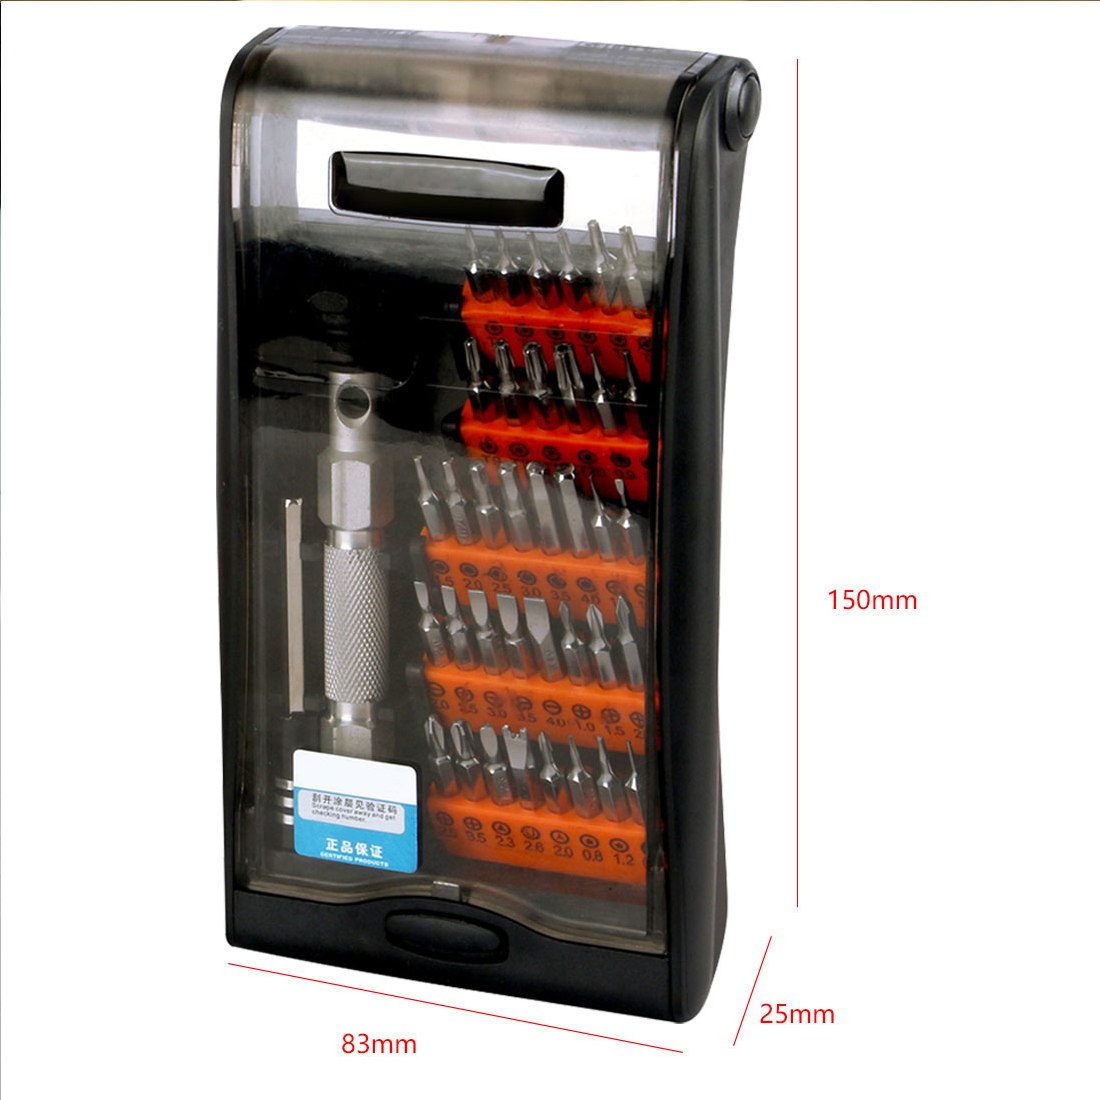 New 38 in 1 Mobile Phone Repair Opening Tools Precision Screwdrivers Set Cell Phone Tablet Electronics Maintenance Tool